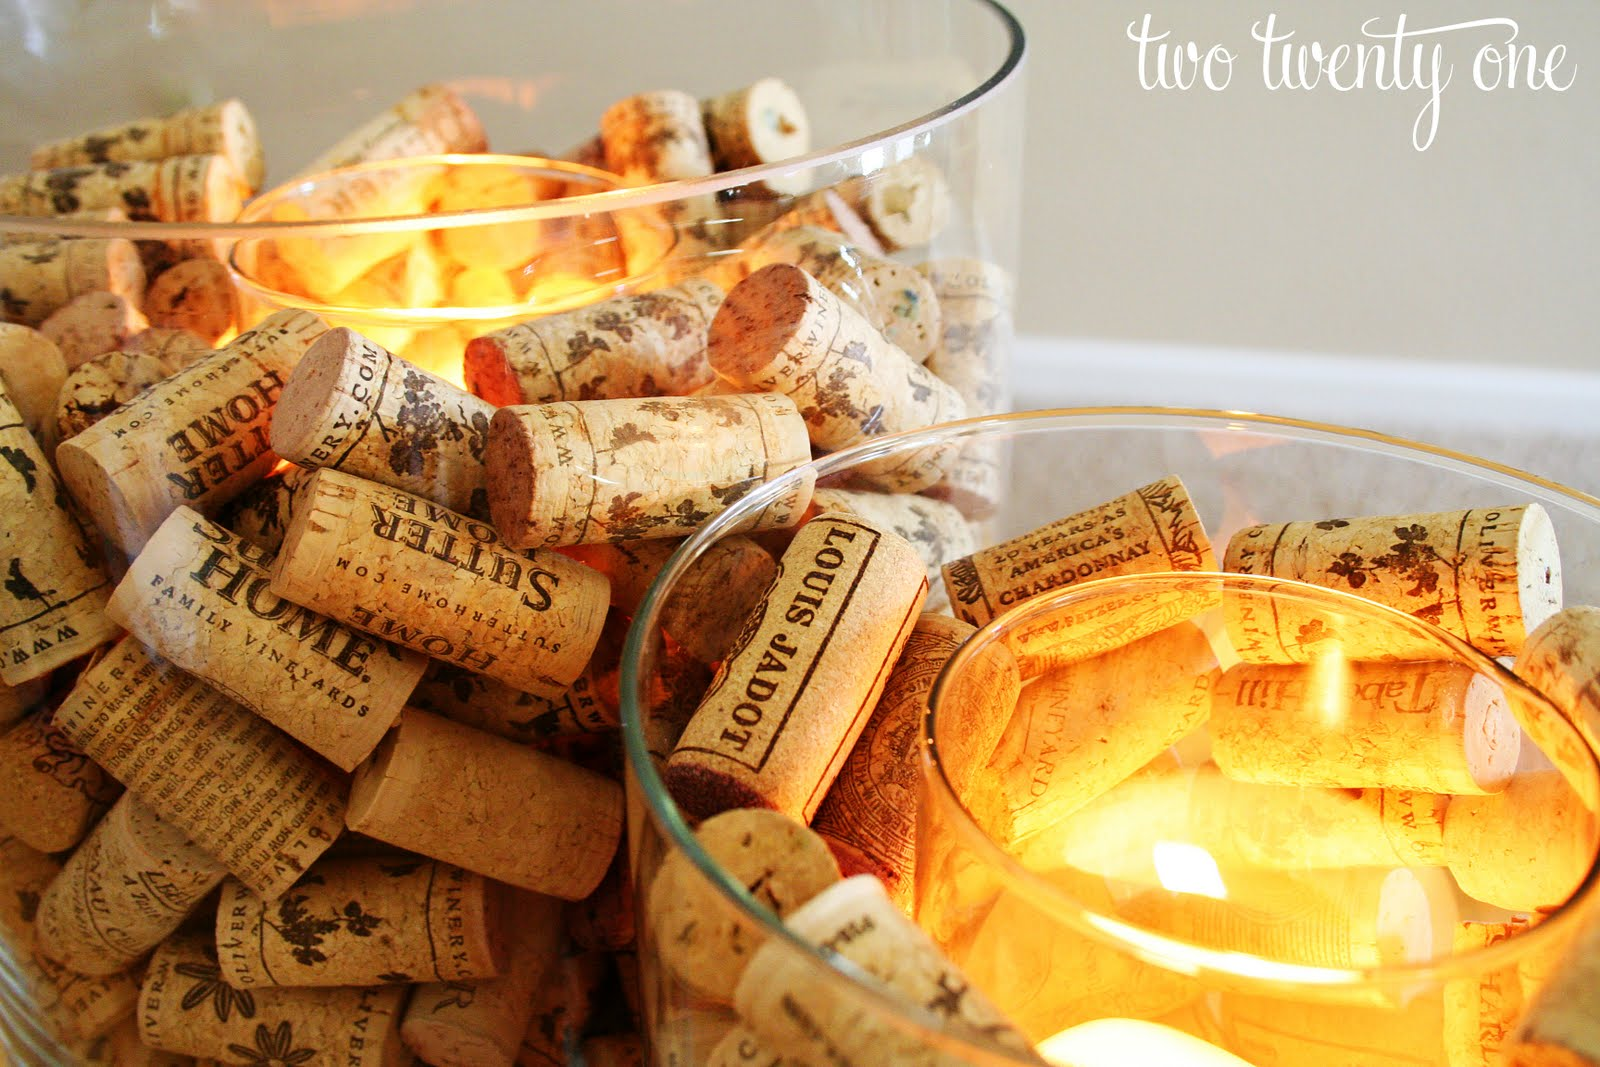 Wine Cork Candle Holder - Two Twenty One